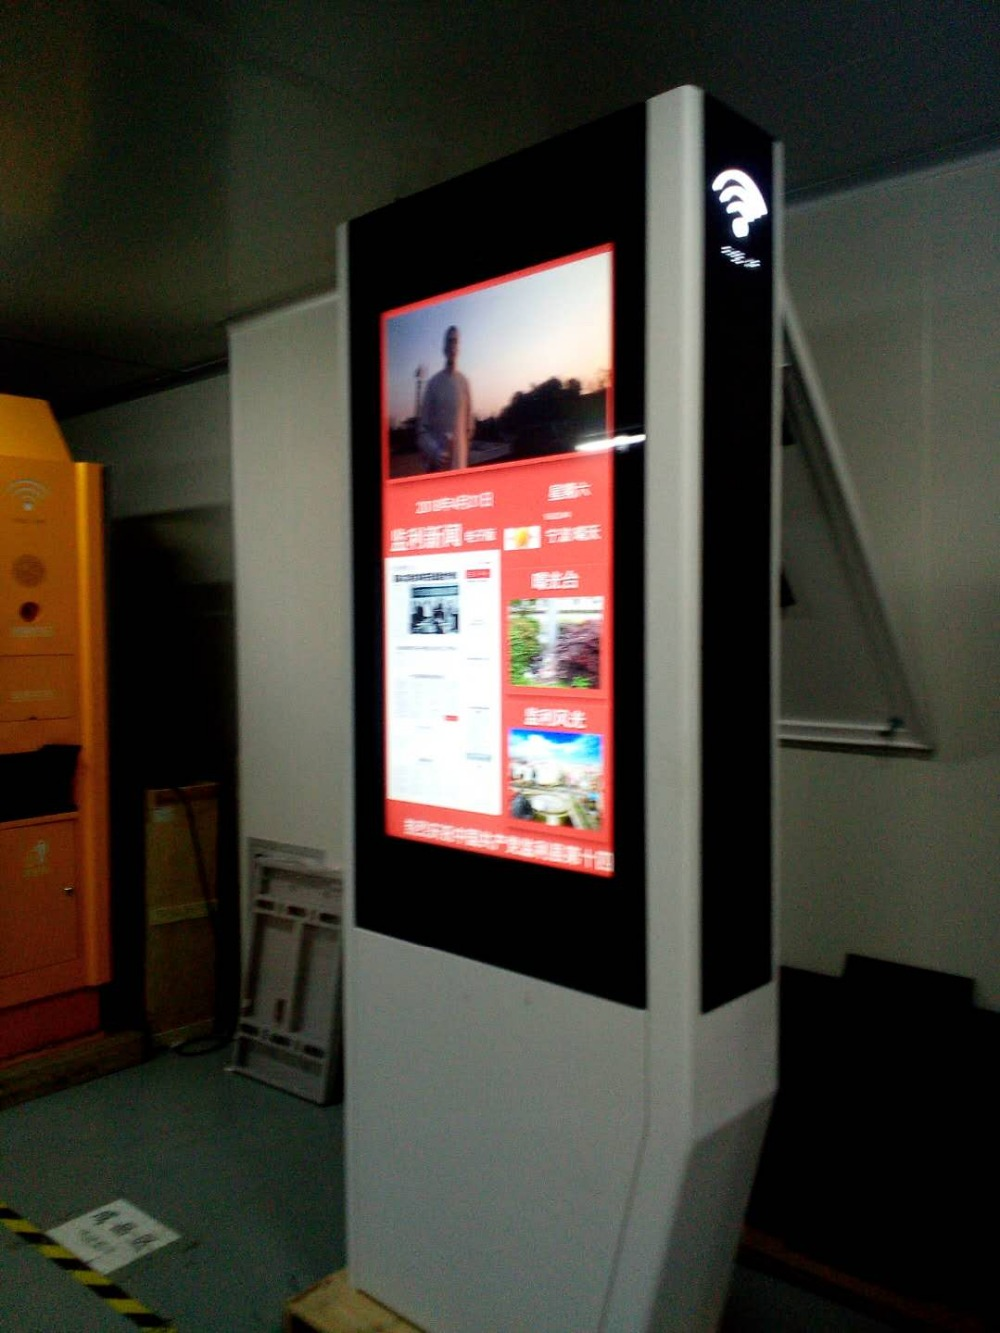 42 49 55 65 Inch Outdoor TFT Lcd Full Hd Display Both Sided Android Windows OS Floor Standing All In One DIY Computer PC